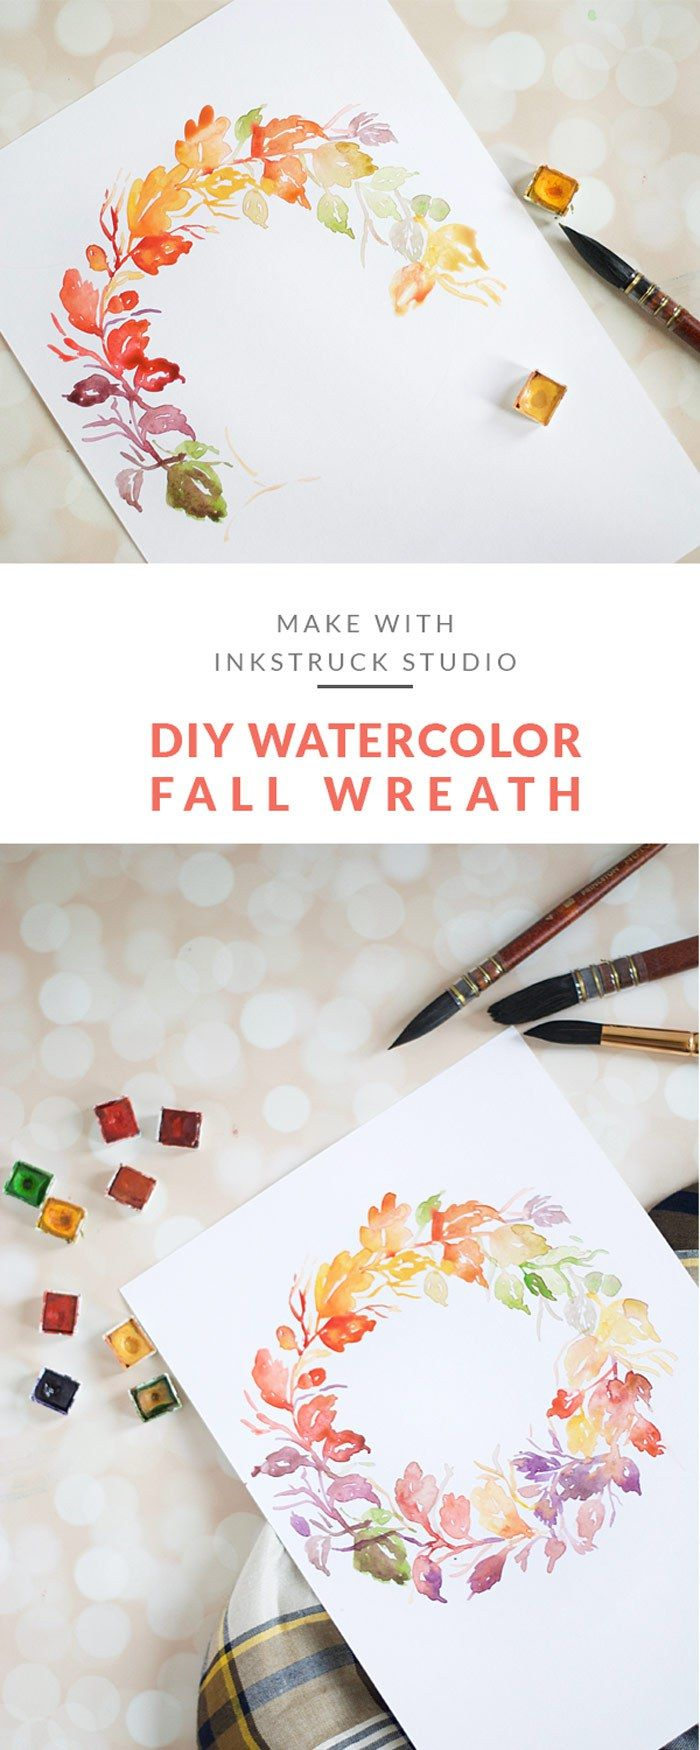 DIY watercolor fall wreath. Click on to learn how to paint them | great tutorial from Inkstruck Studio for decor or a wedding